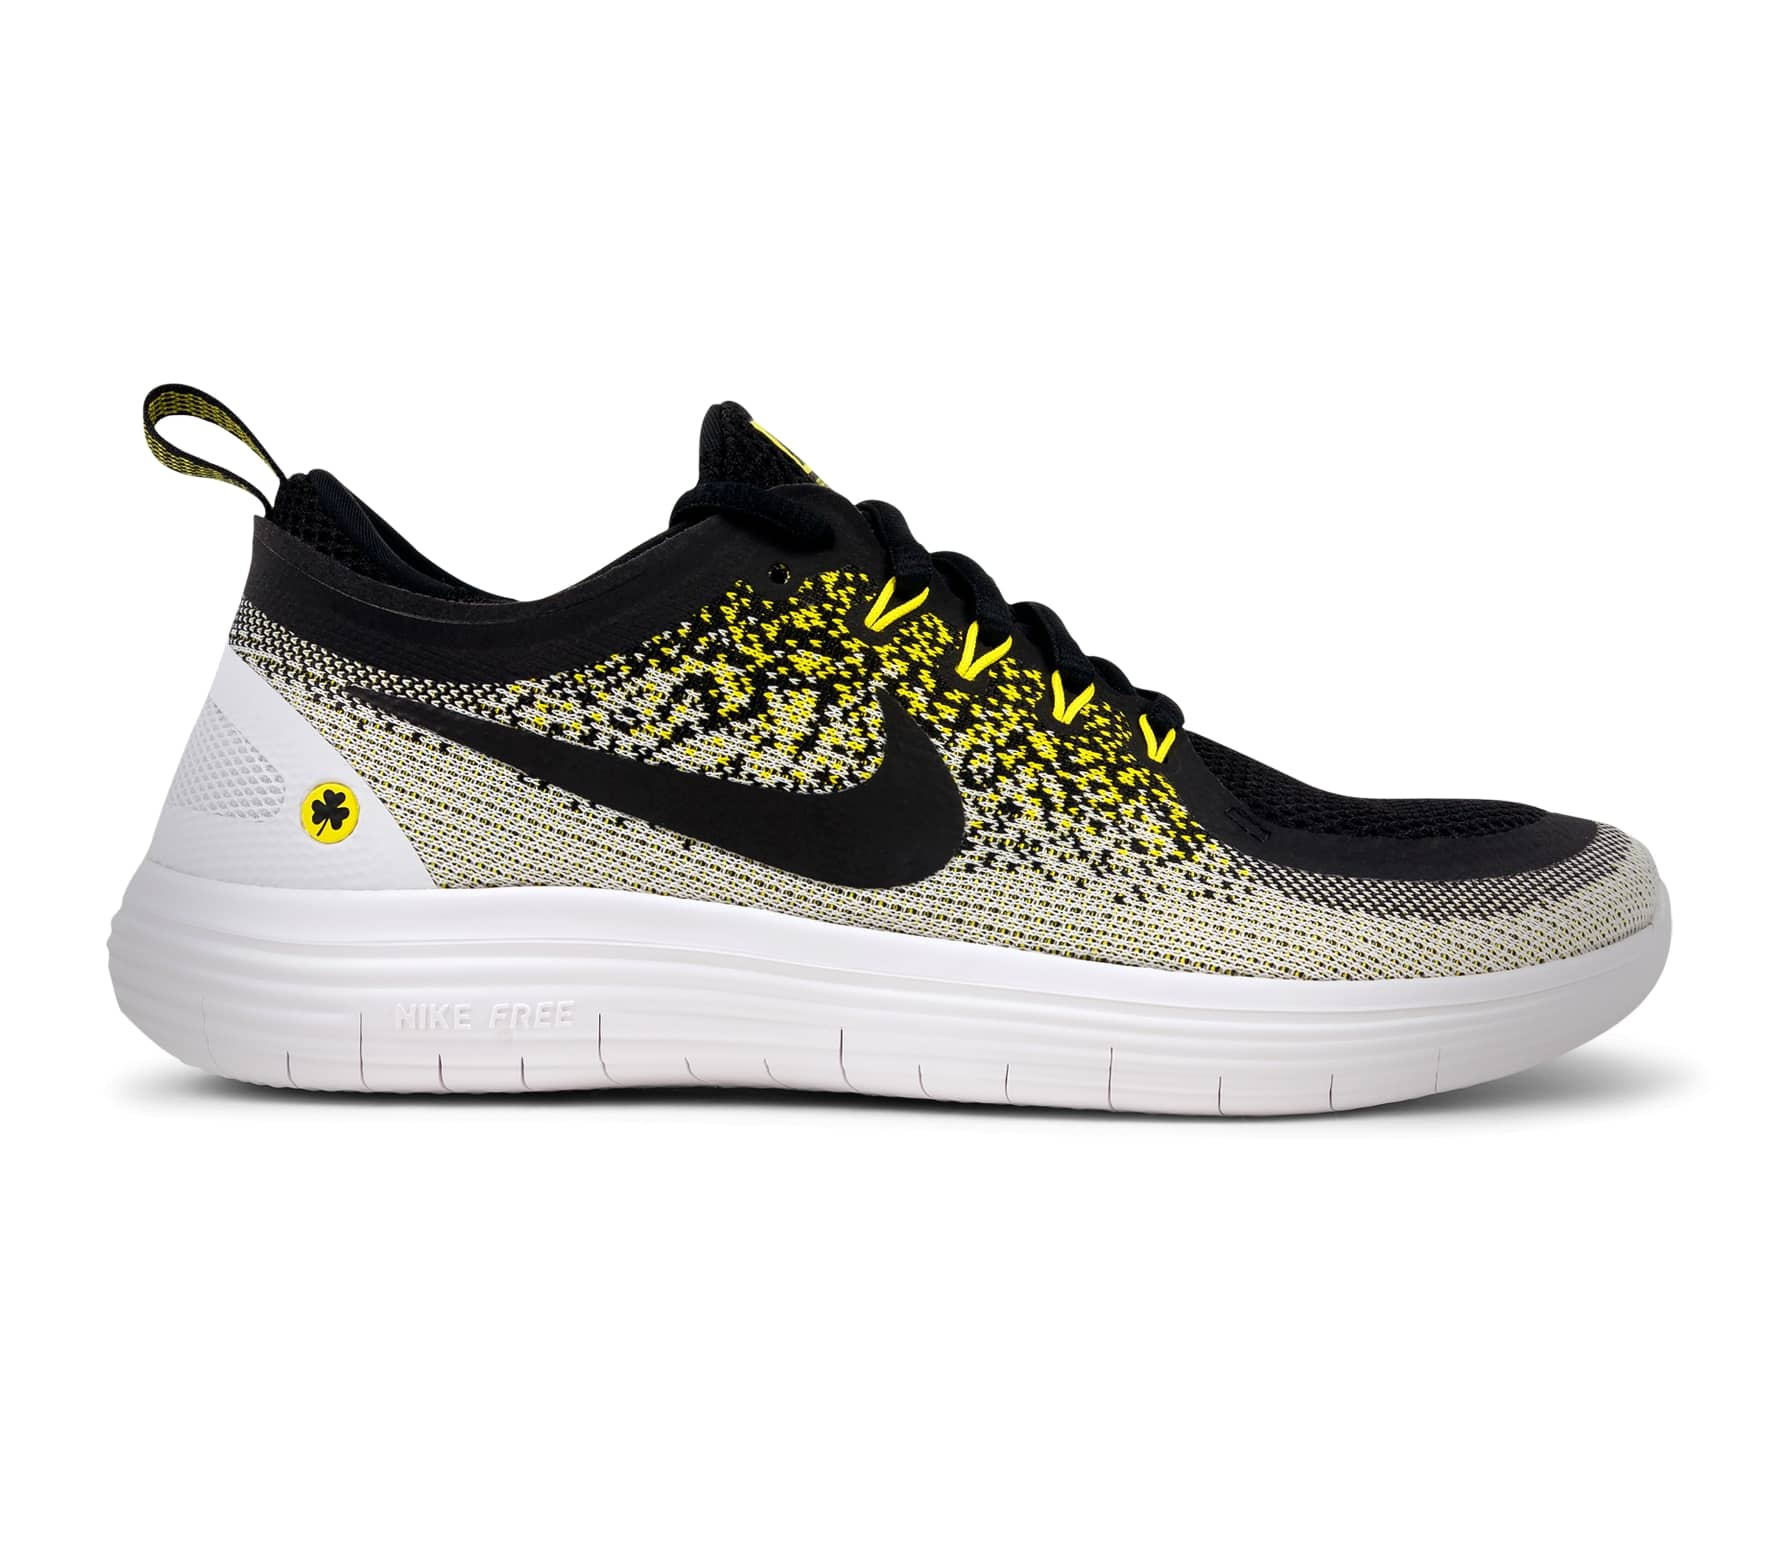 c85c2ff1bd30 Nike - Free RN Distance 2 BSTN women s running shoes (black yellow ...